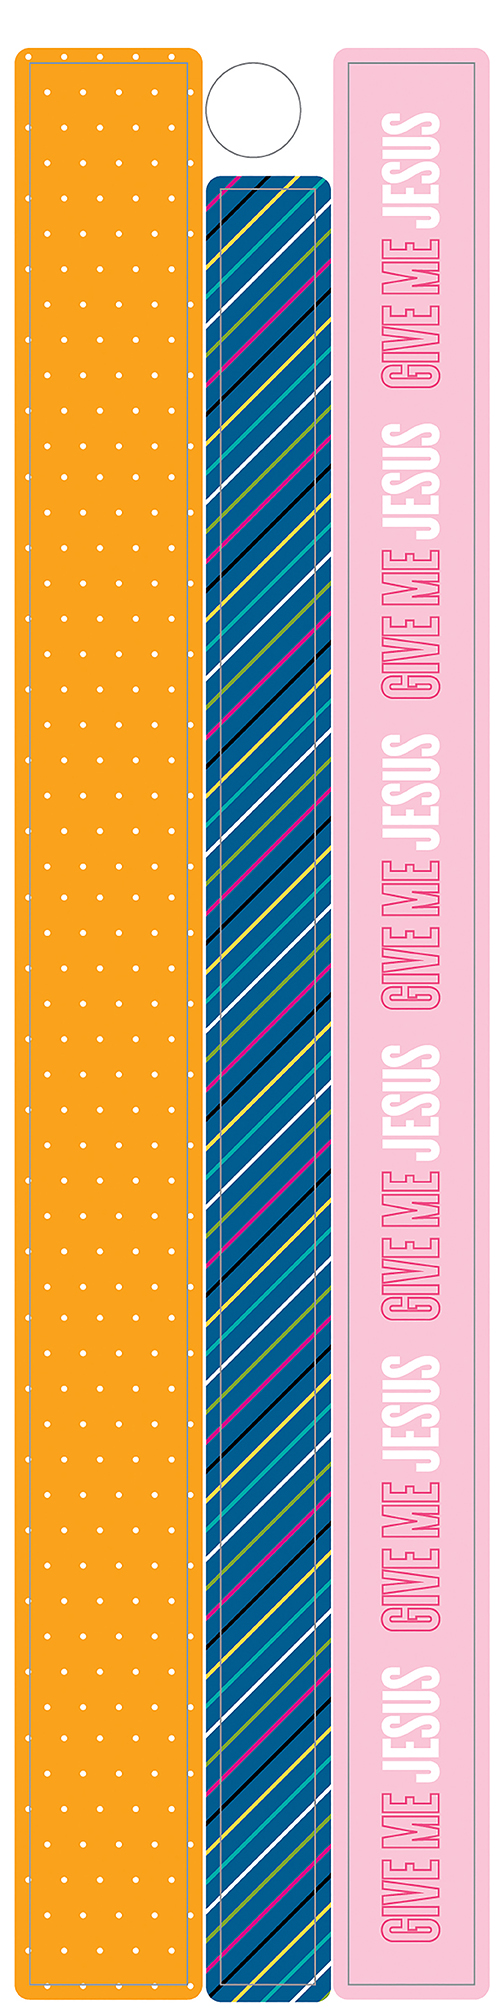 1405_WASHI_STICKERS_COLORFUL-02